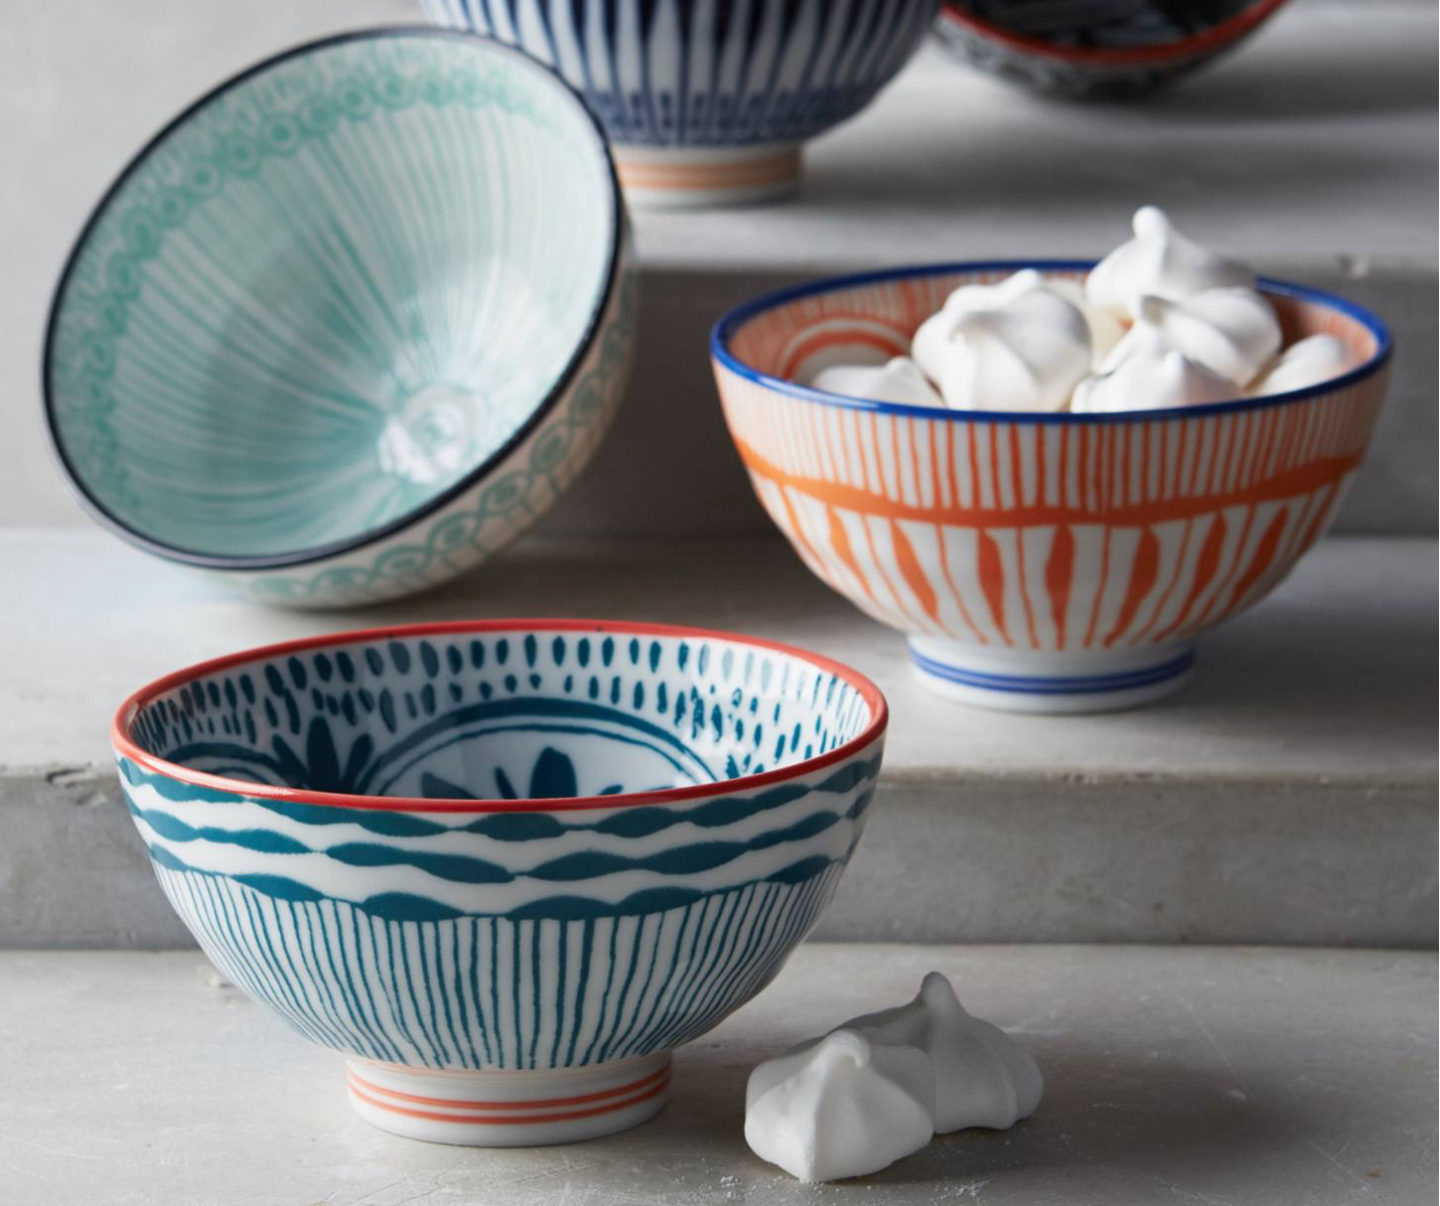 7 Reasons Why Anthropologie is Trying to Bankrupt Me